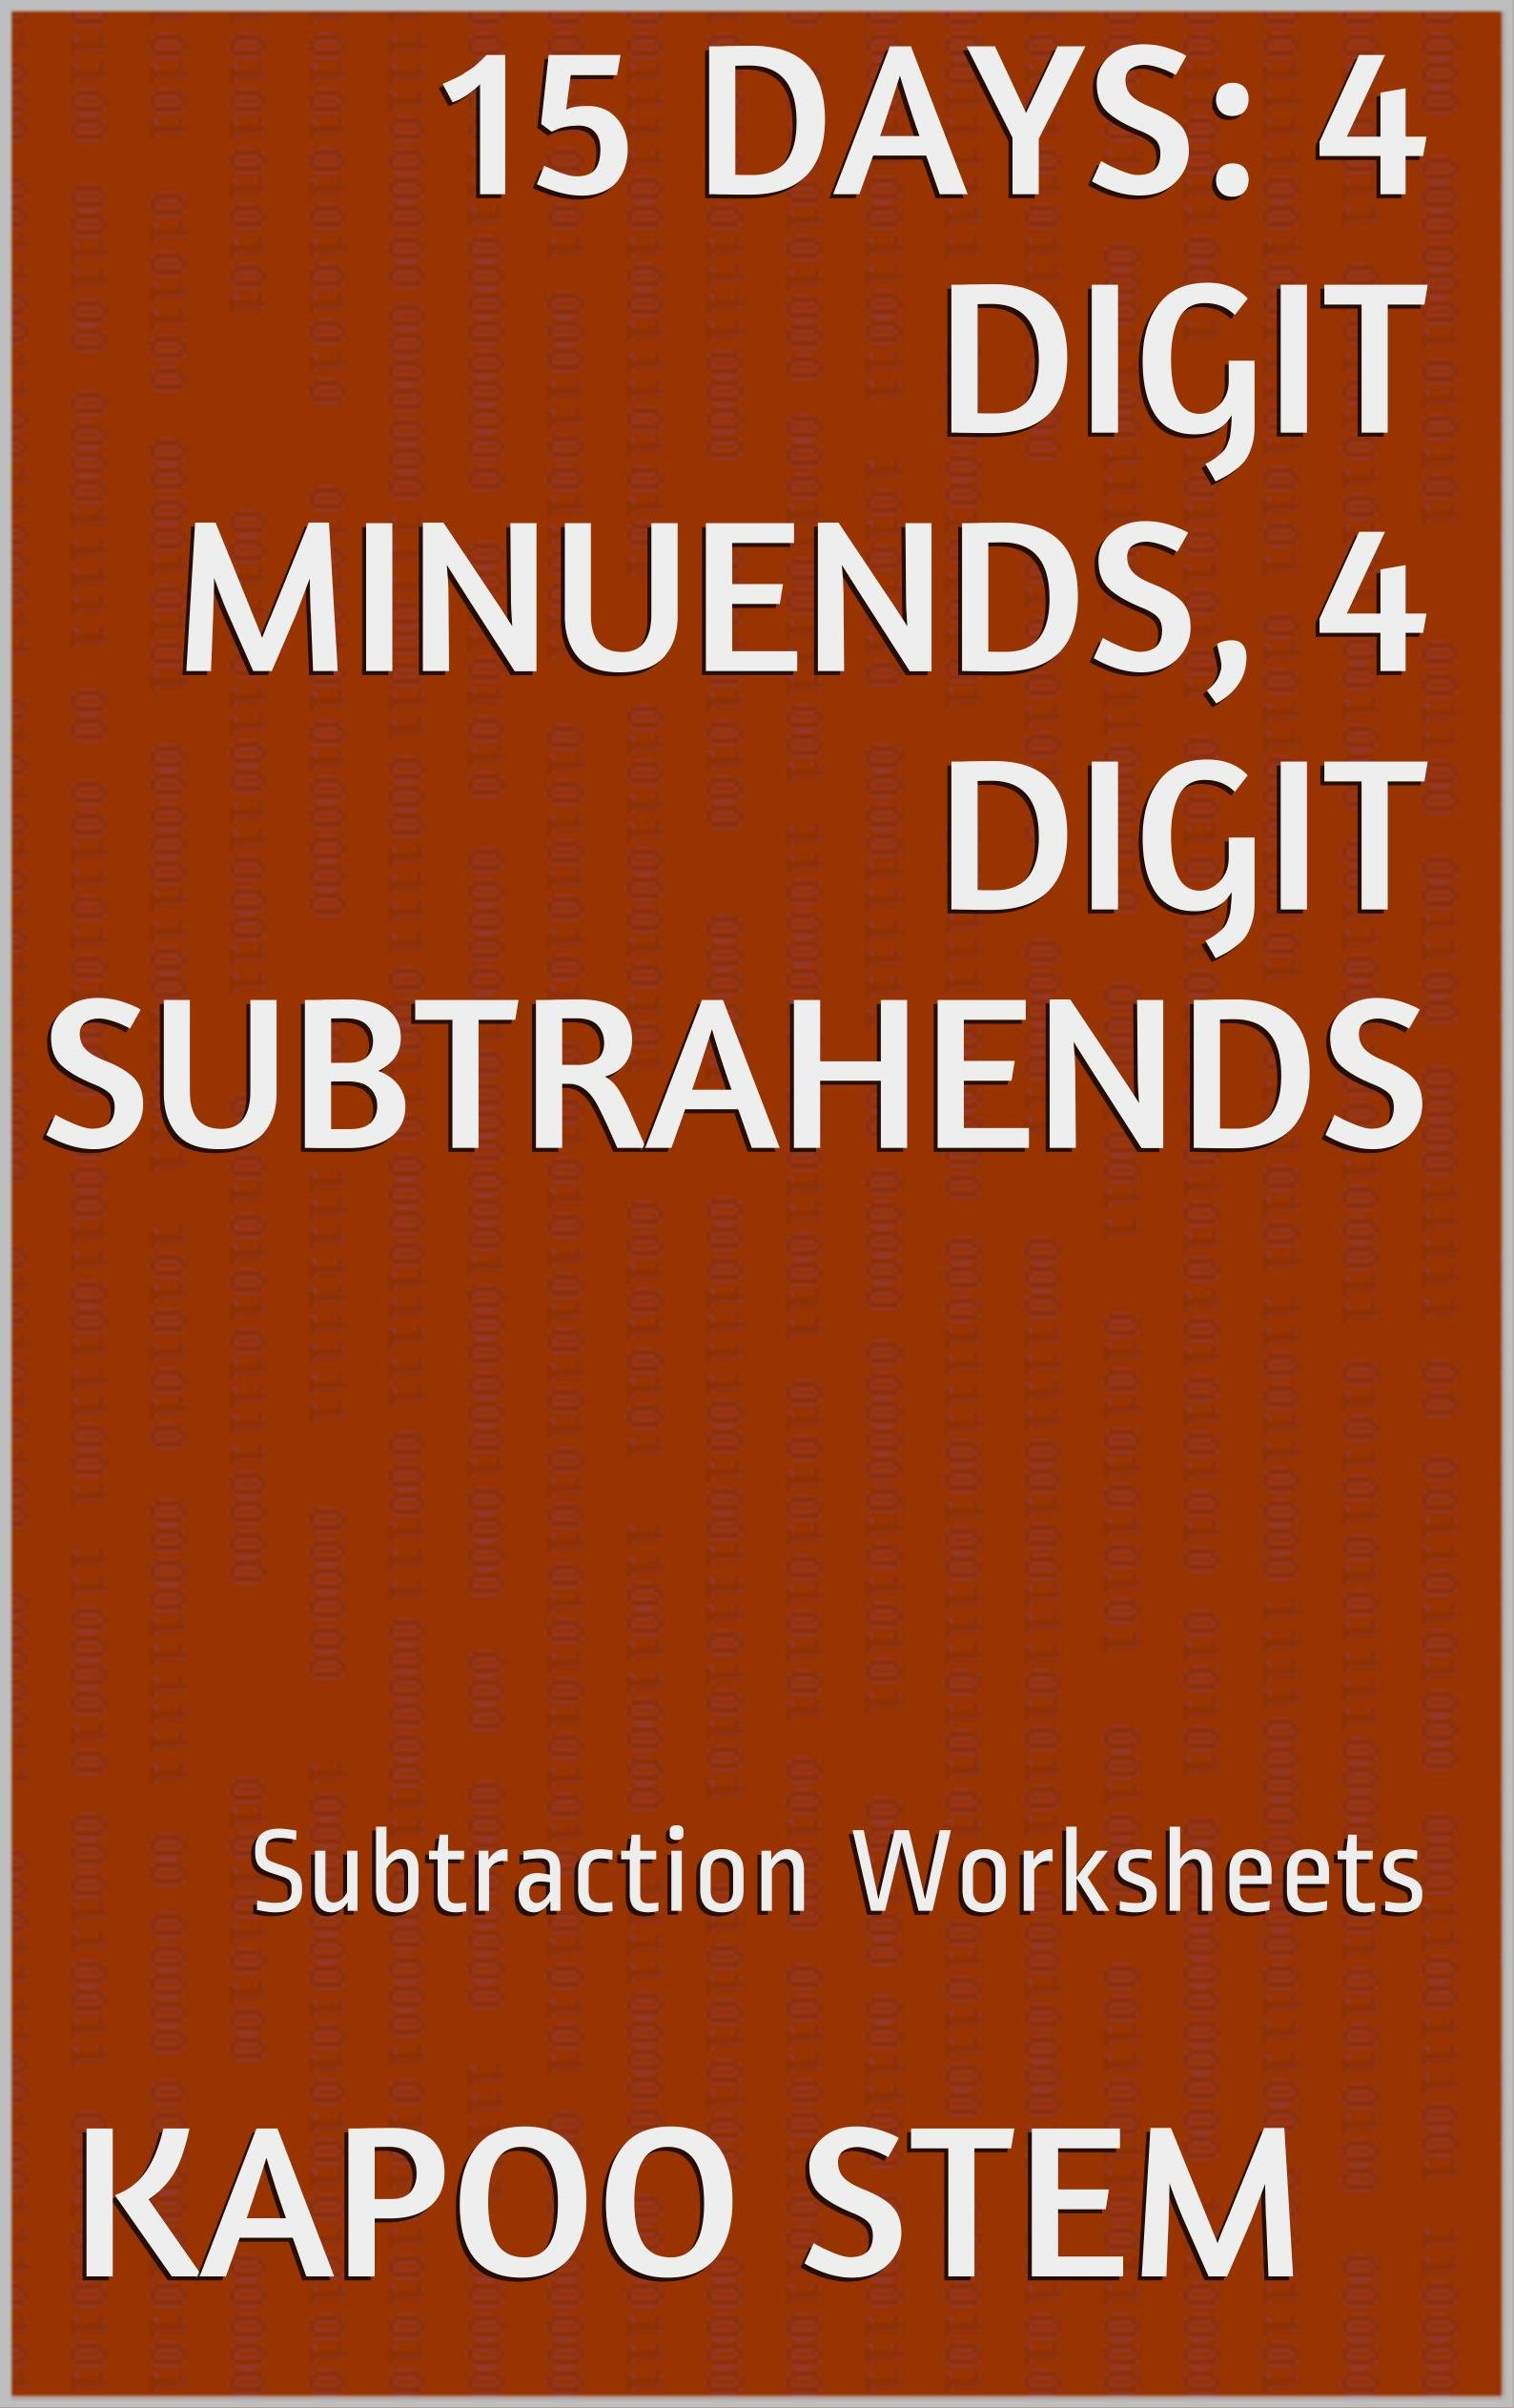 15 Subtraction Worksheets With 4 Digit Minuends 4 Digit